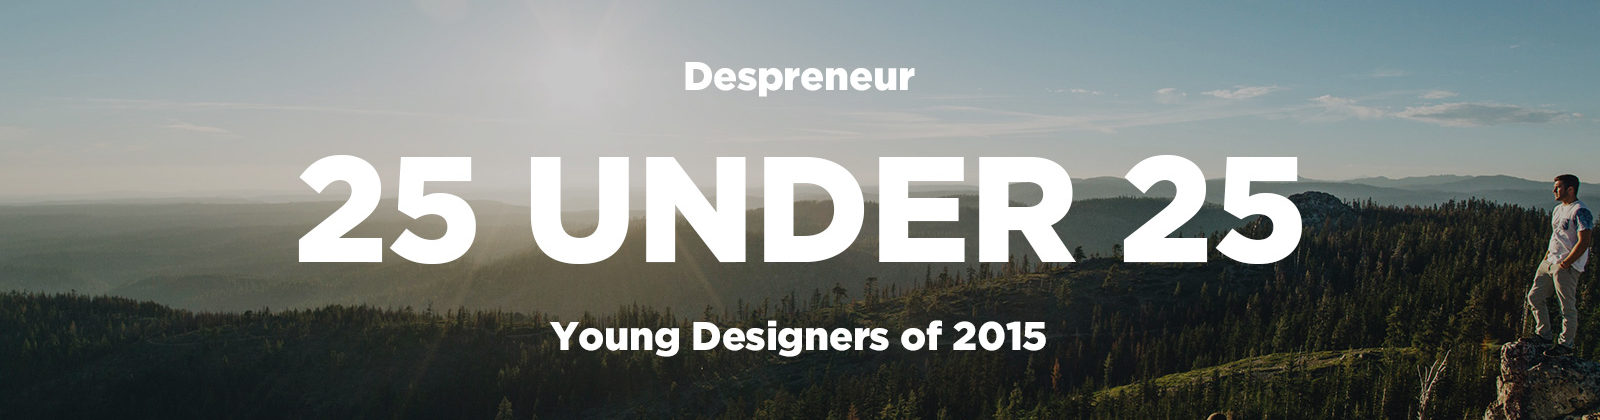 25 Under 25: Young Designers of 2015